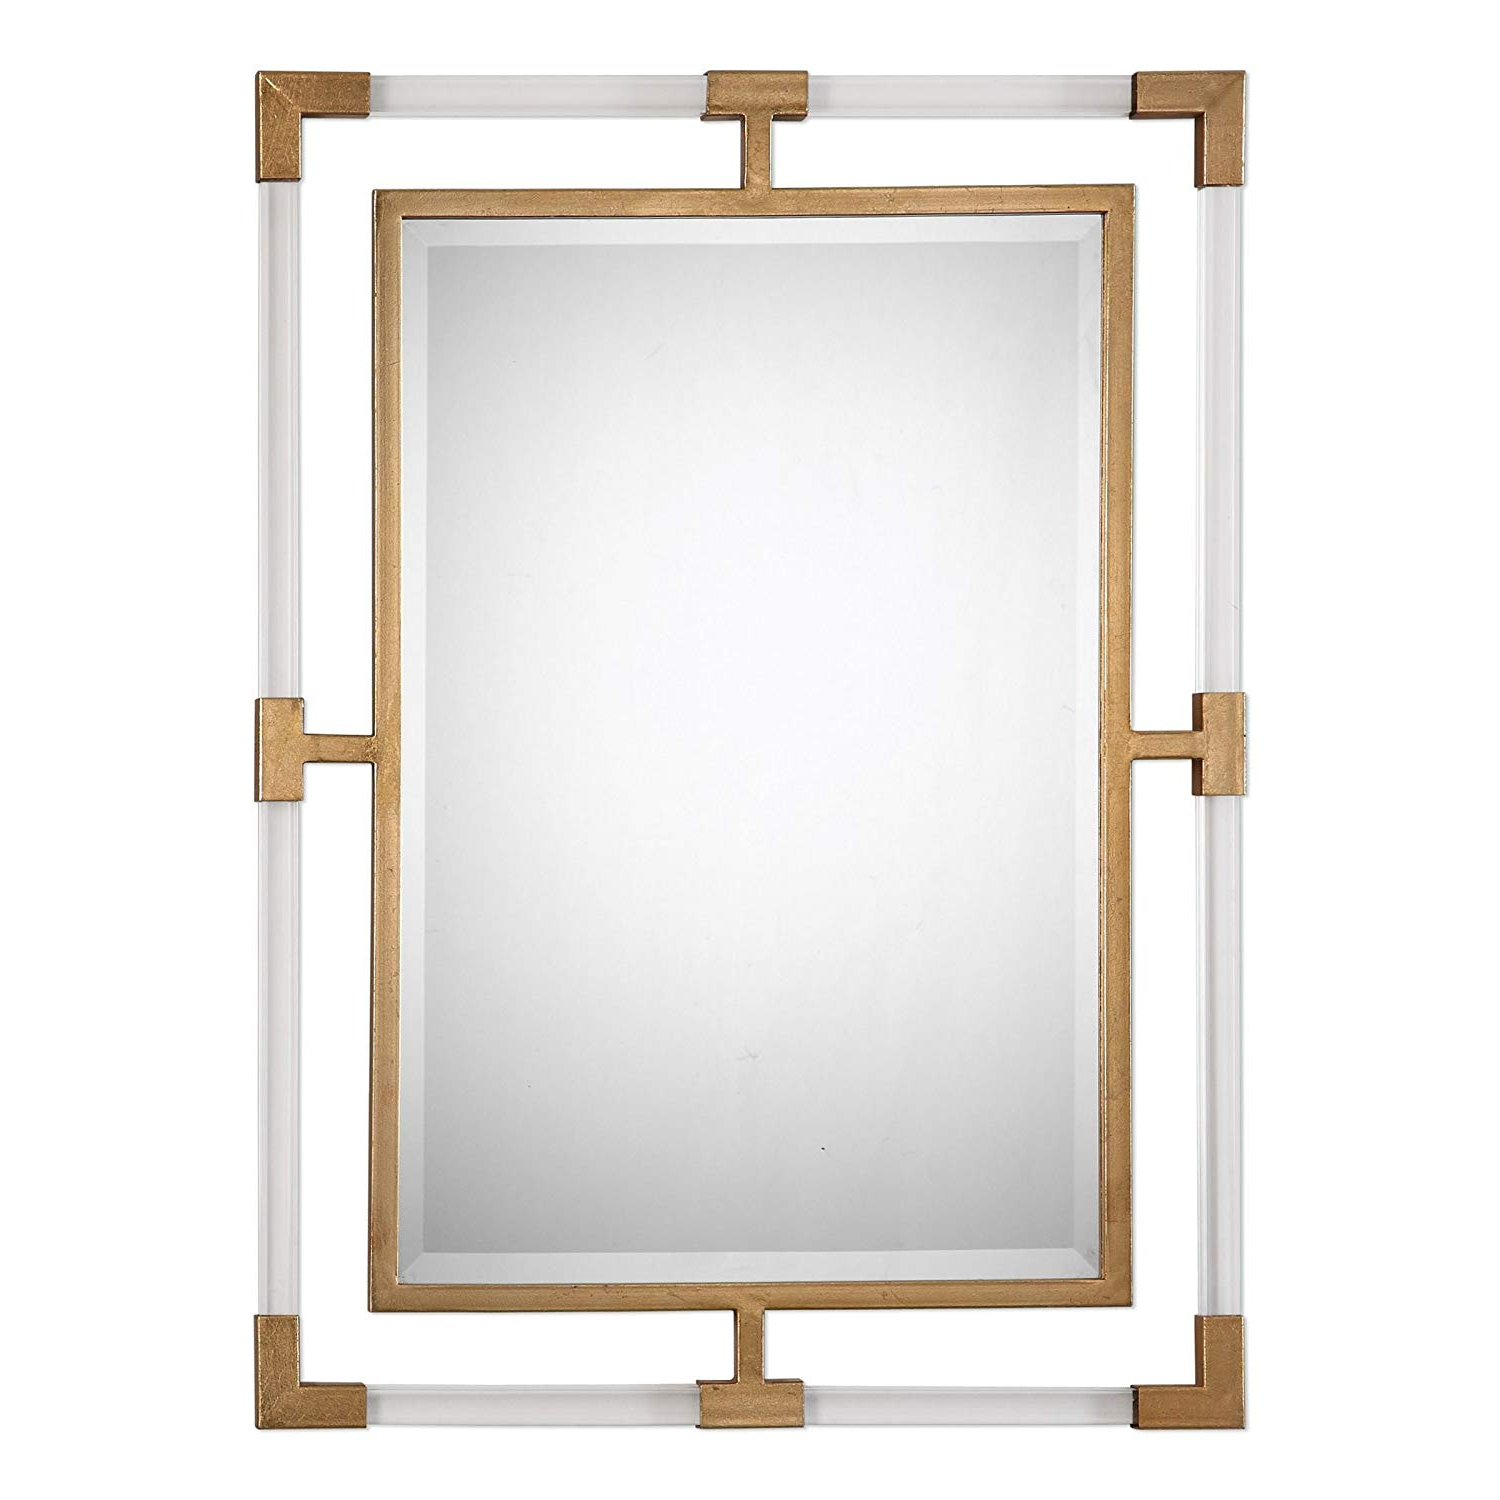 Preferred Amazon: Modern Gold Acrylic Tube Wall Mirror (View 17 of 20)